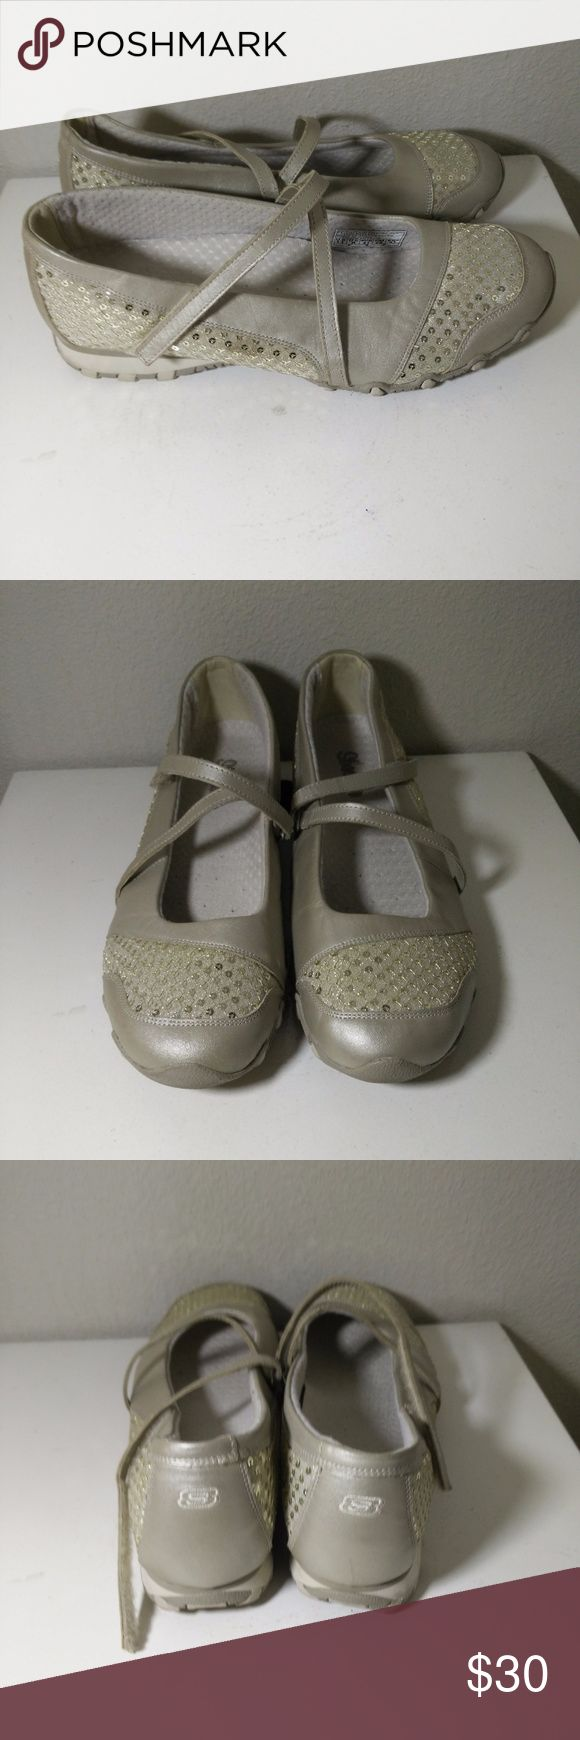 Gold Leather Skechers Mary Jane Comfort Flats Women's Gold Leather Skechers Mary Jane Comfort Flats Size 11 - Very cute - a rare find at this size and in awesome condition as well! (ref#1979) Skechers Shoes Flats & Loafers